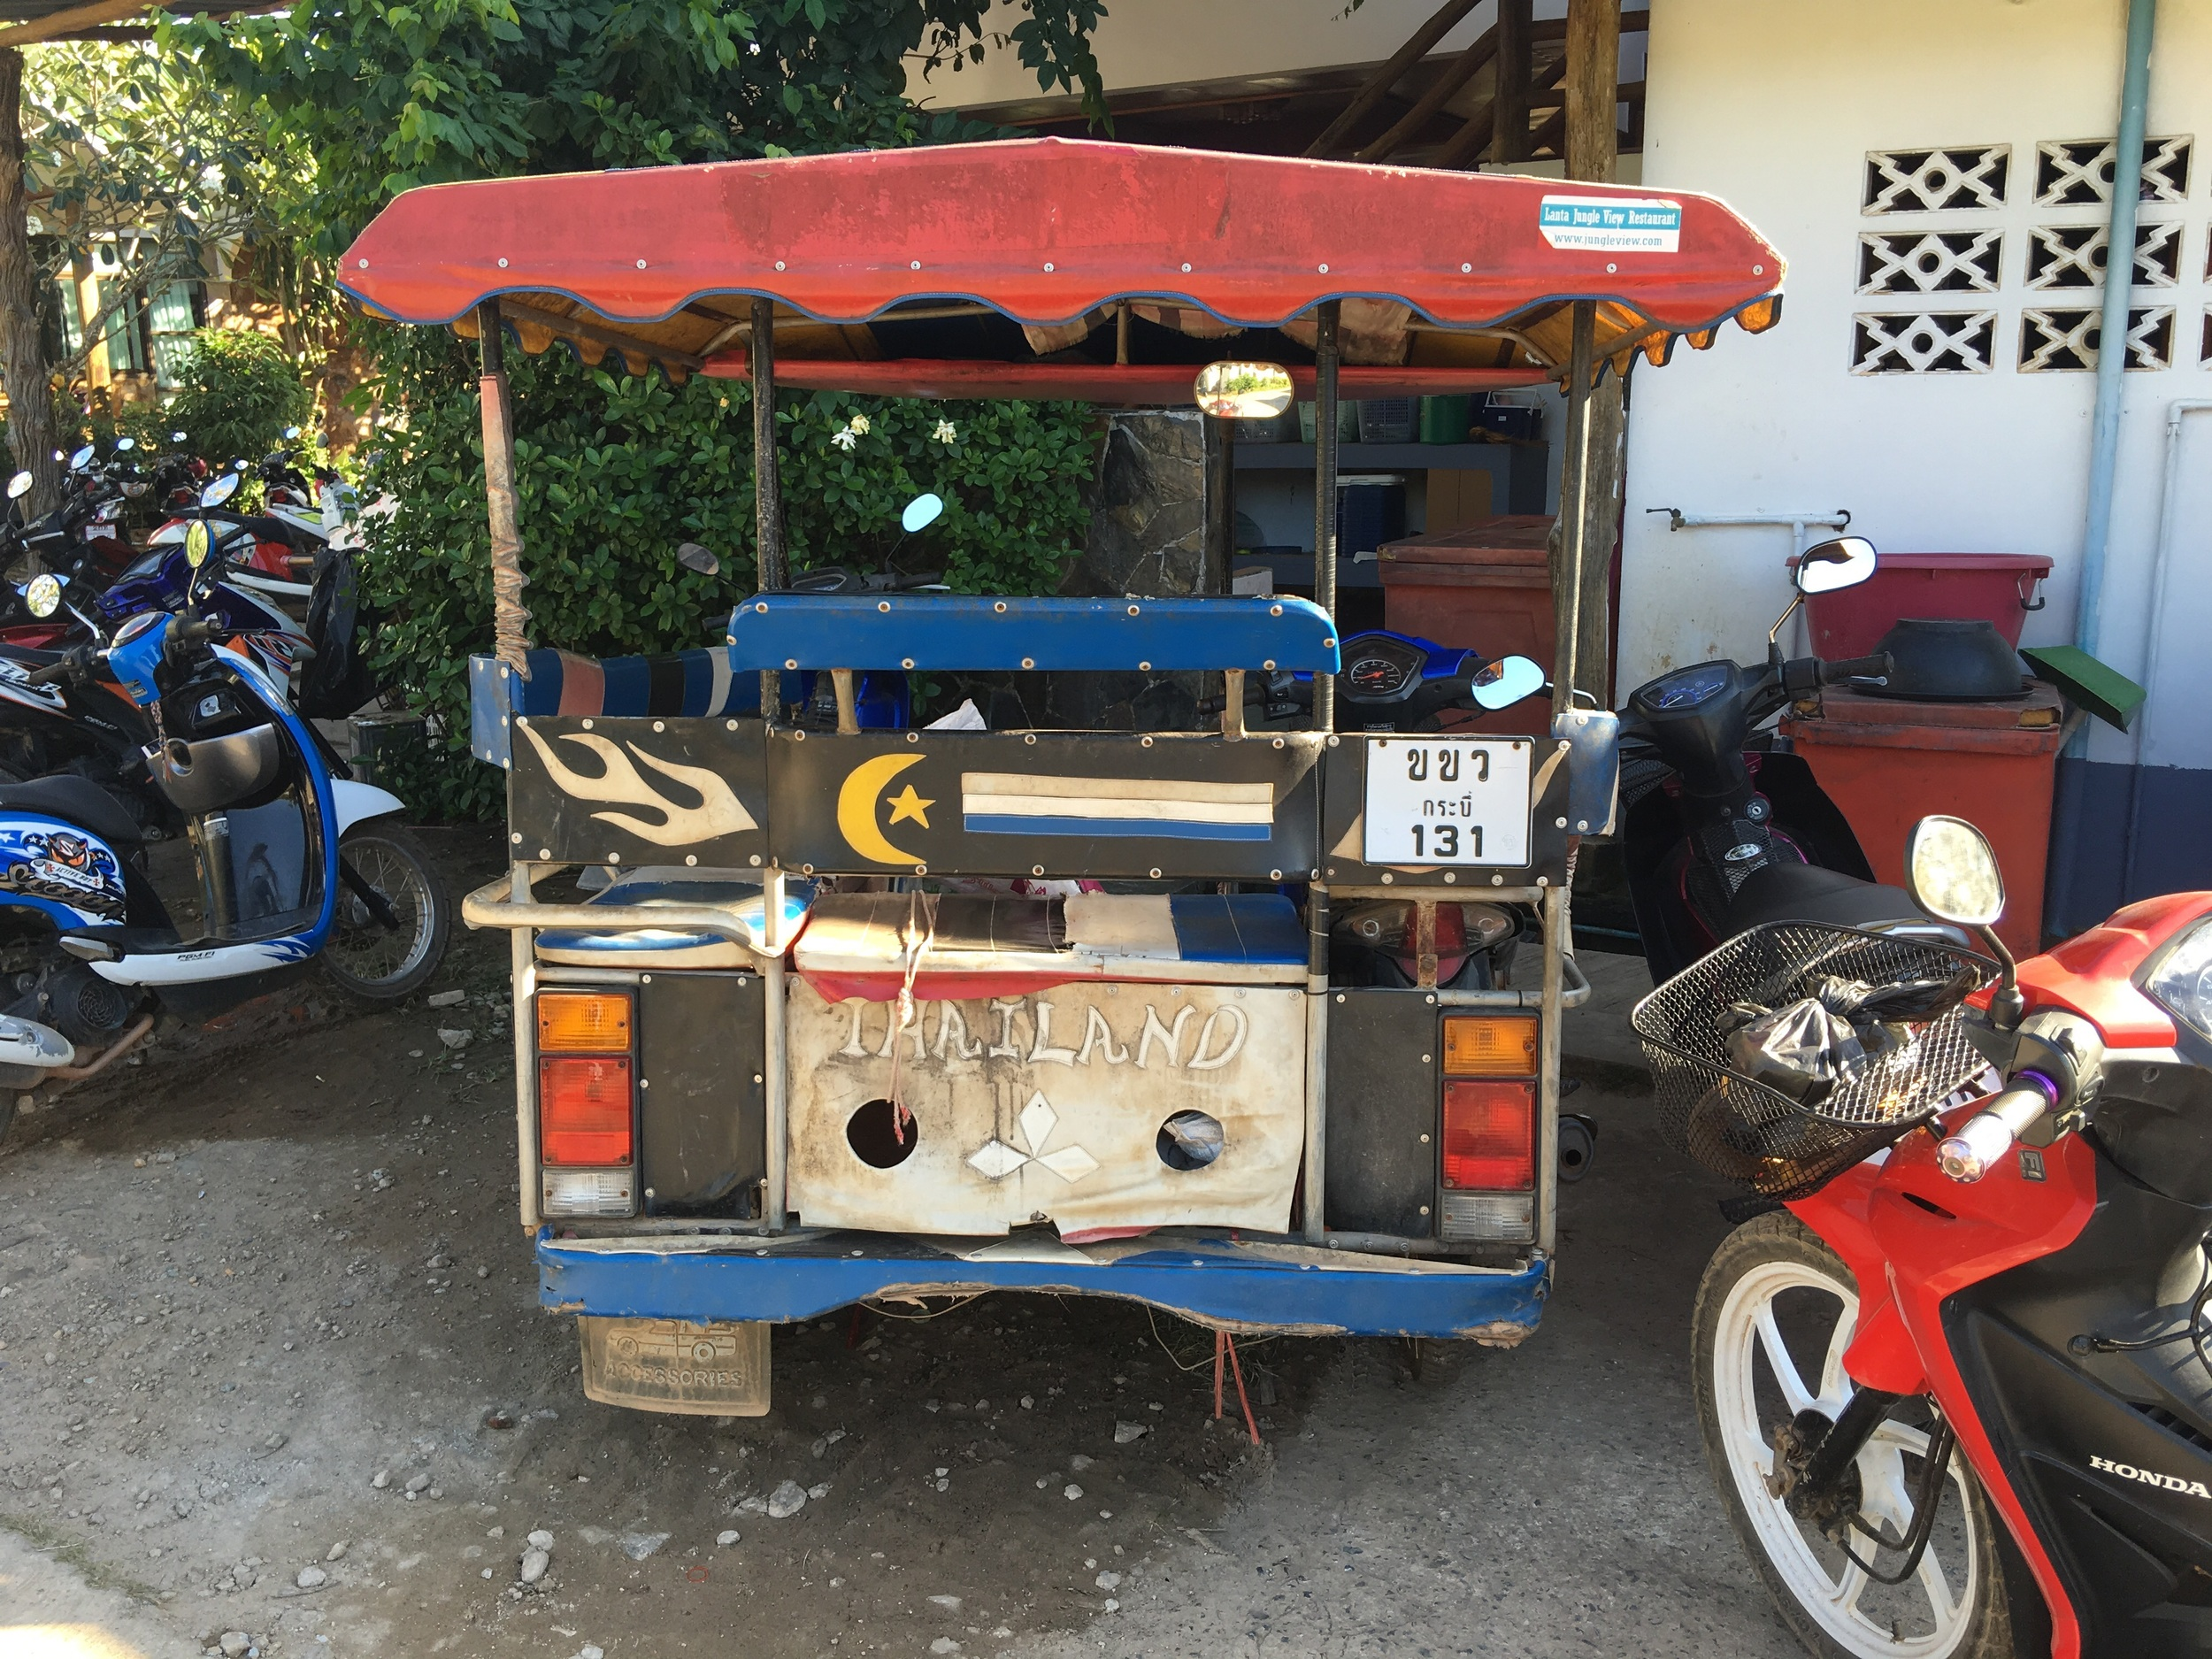 the TOK TOK Car, it's a mini motorbike with a metal frame with seats used as a taxi to move people around the island some of them are decorated very ornately (pimped out)with black lights and hanging tassles much nicer than the ones in India